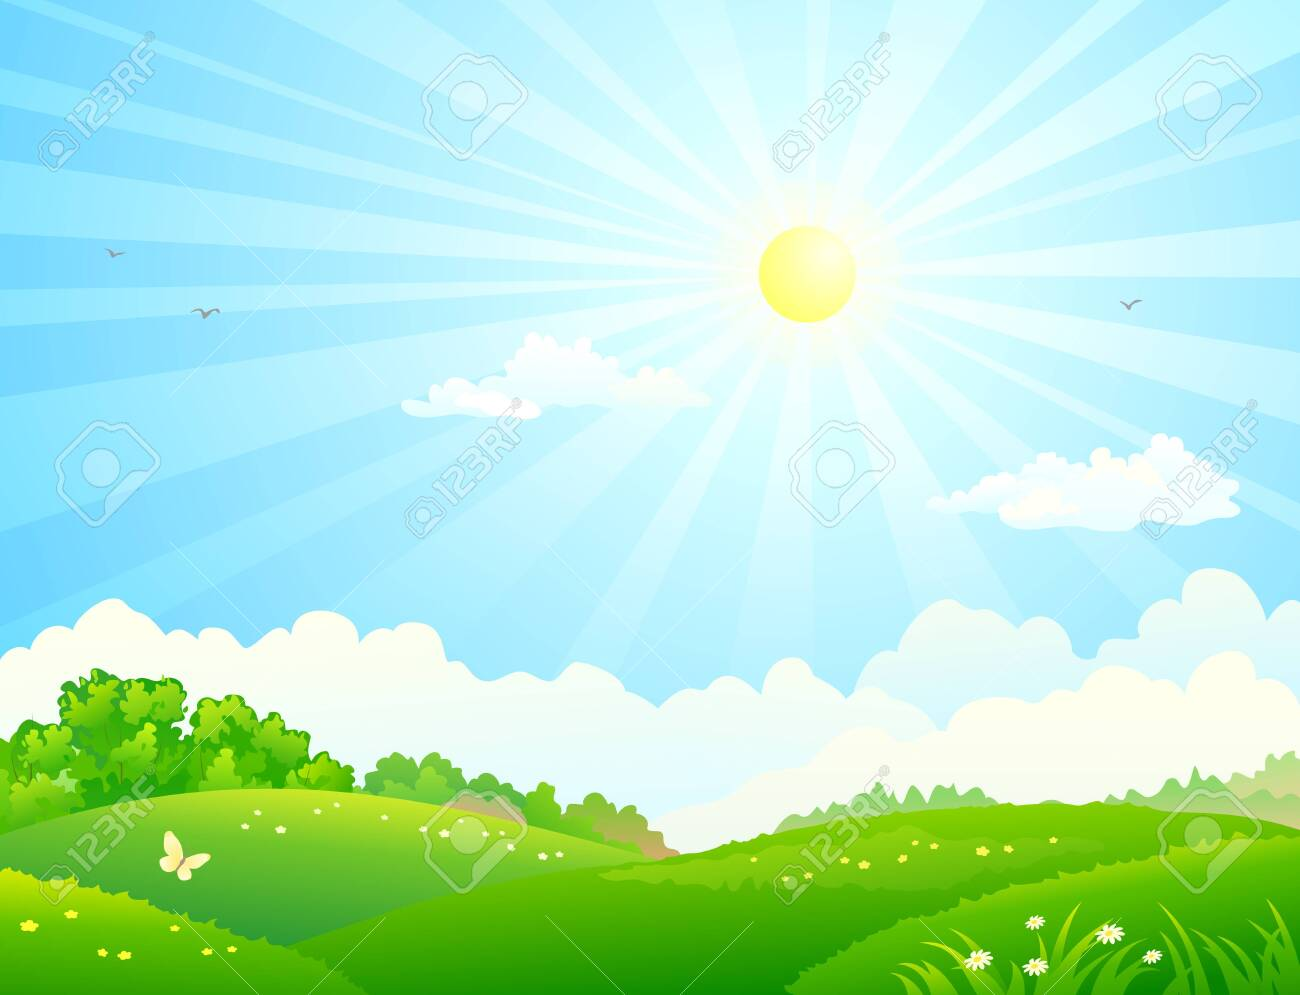 Vector illustration of green fields and sunny sky - 148211514